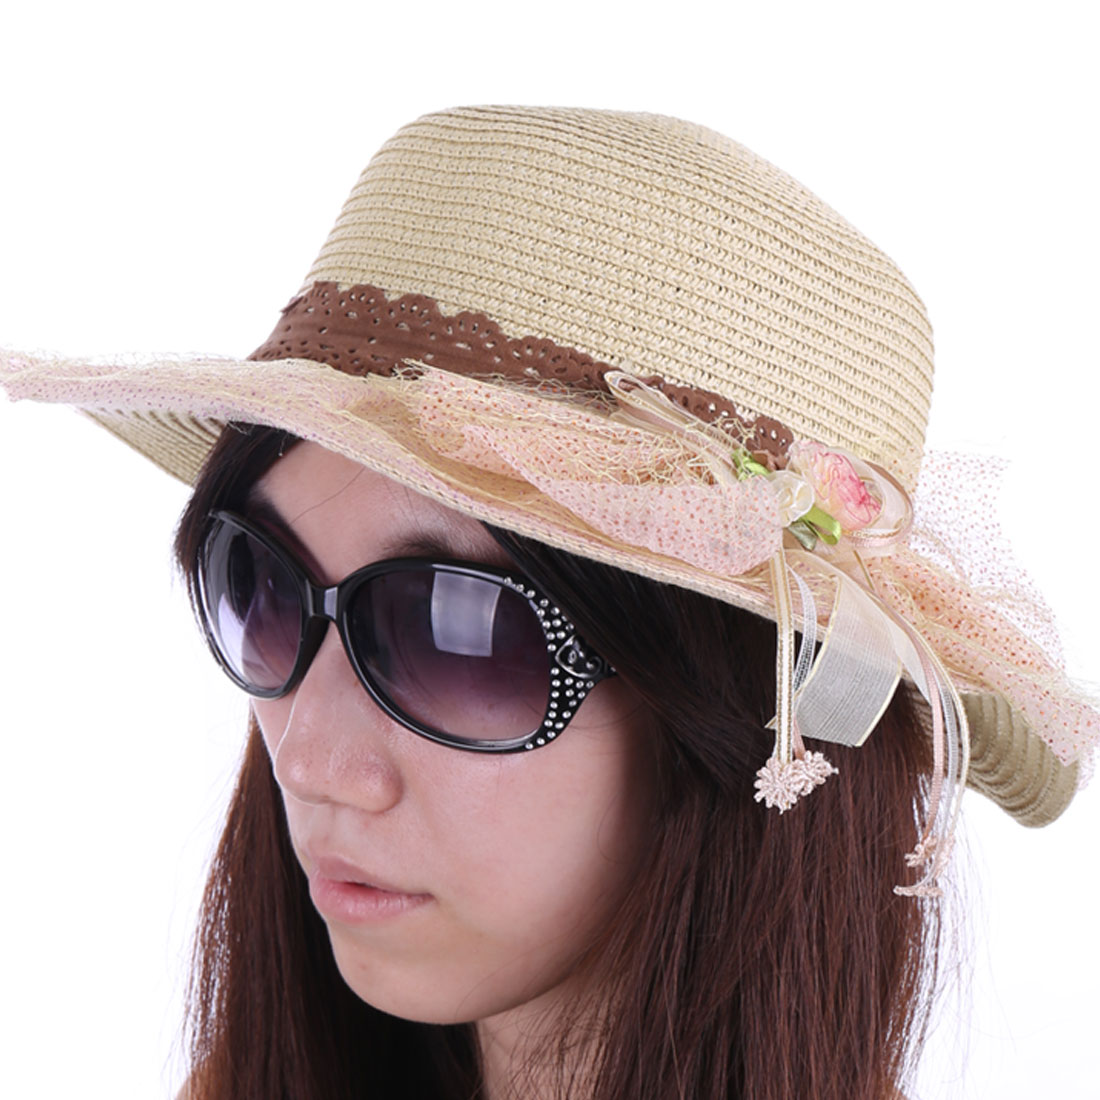 NEW Fashion Pink Mesh Covered Beige Straw Braided Sun Hat for Lady